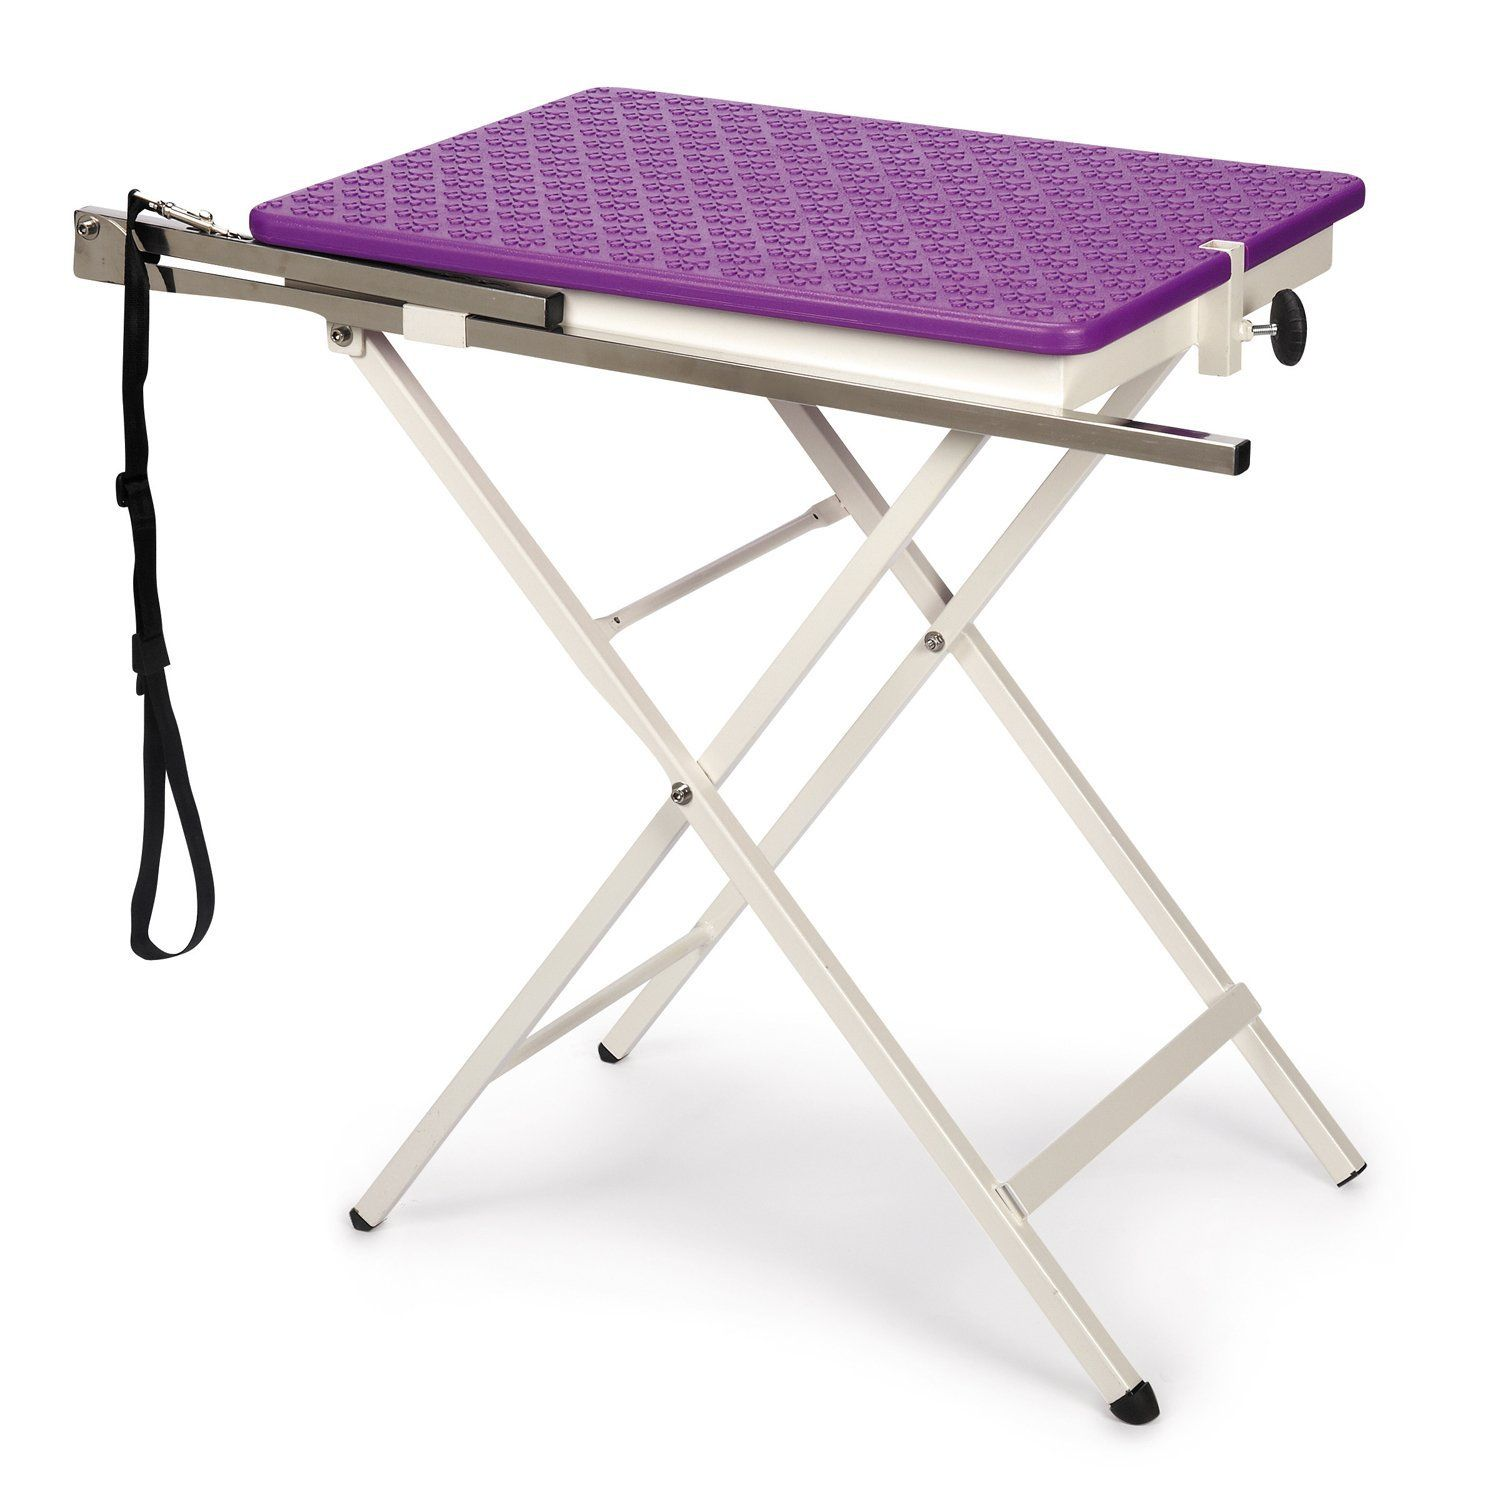 master equipment steel versa competition pet grooming table see this awesome image dog